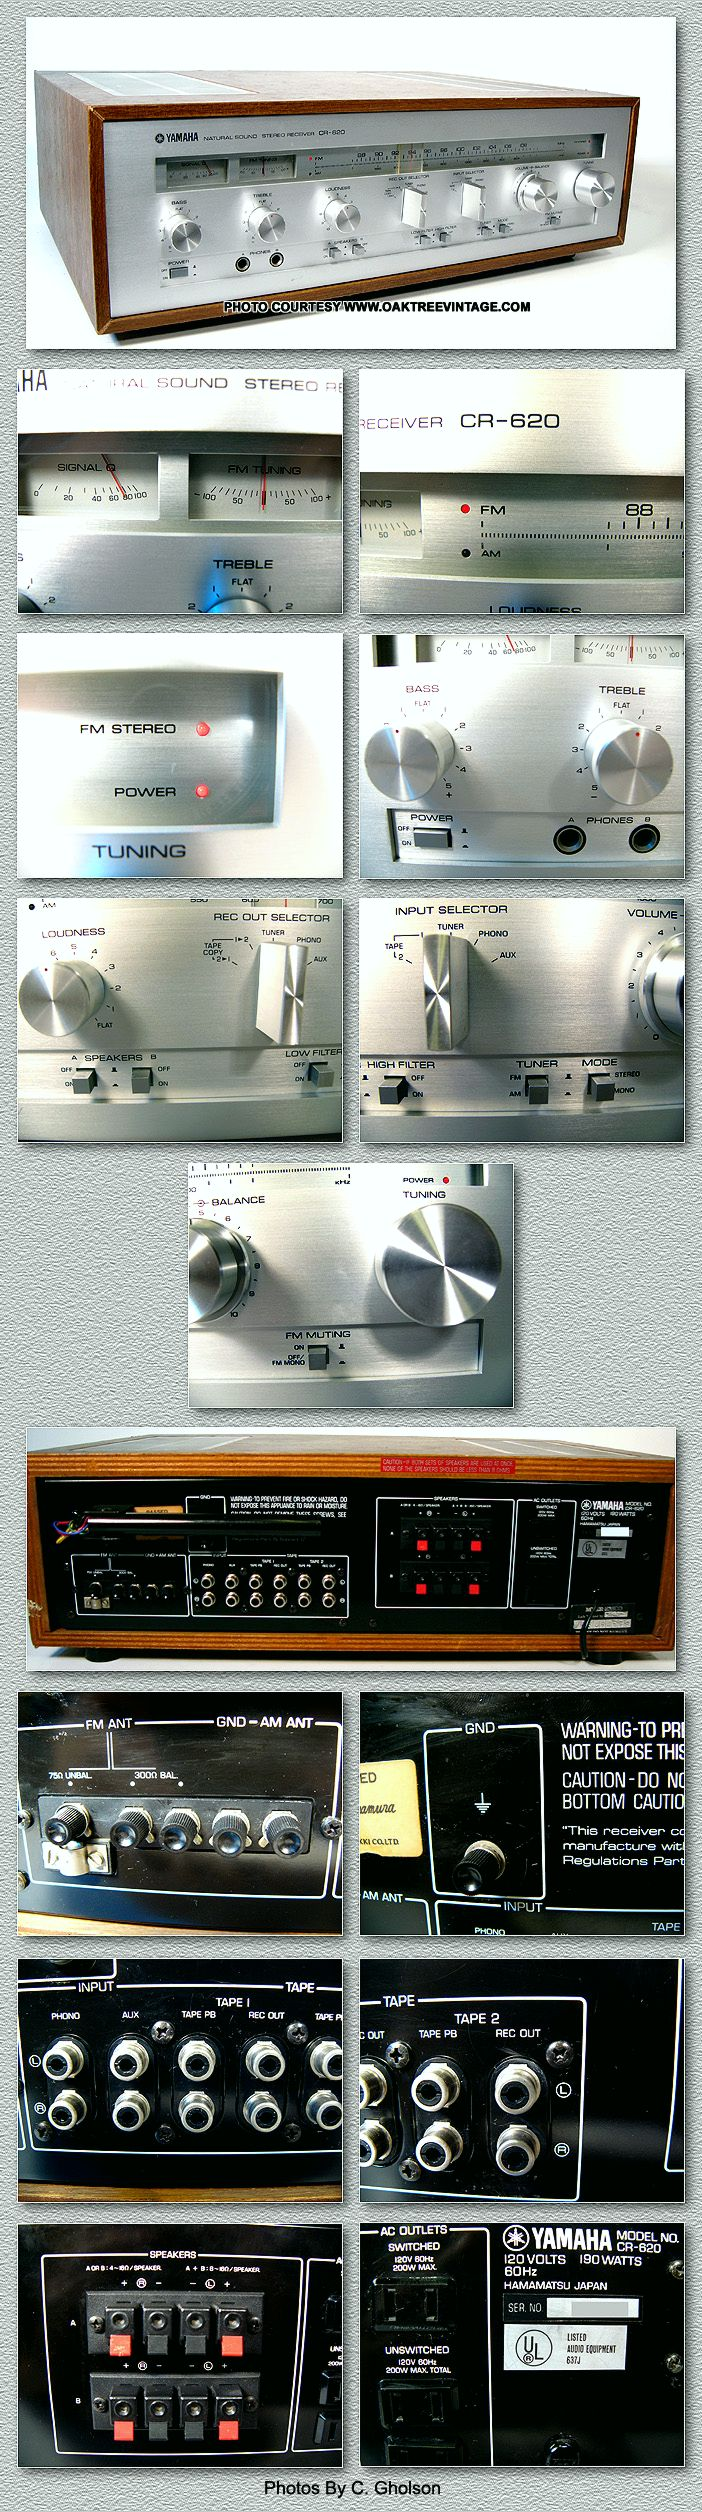 Yamaha Stereo Parts for Vintage Yamaha gear